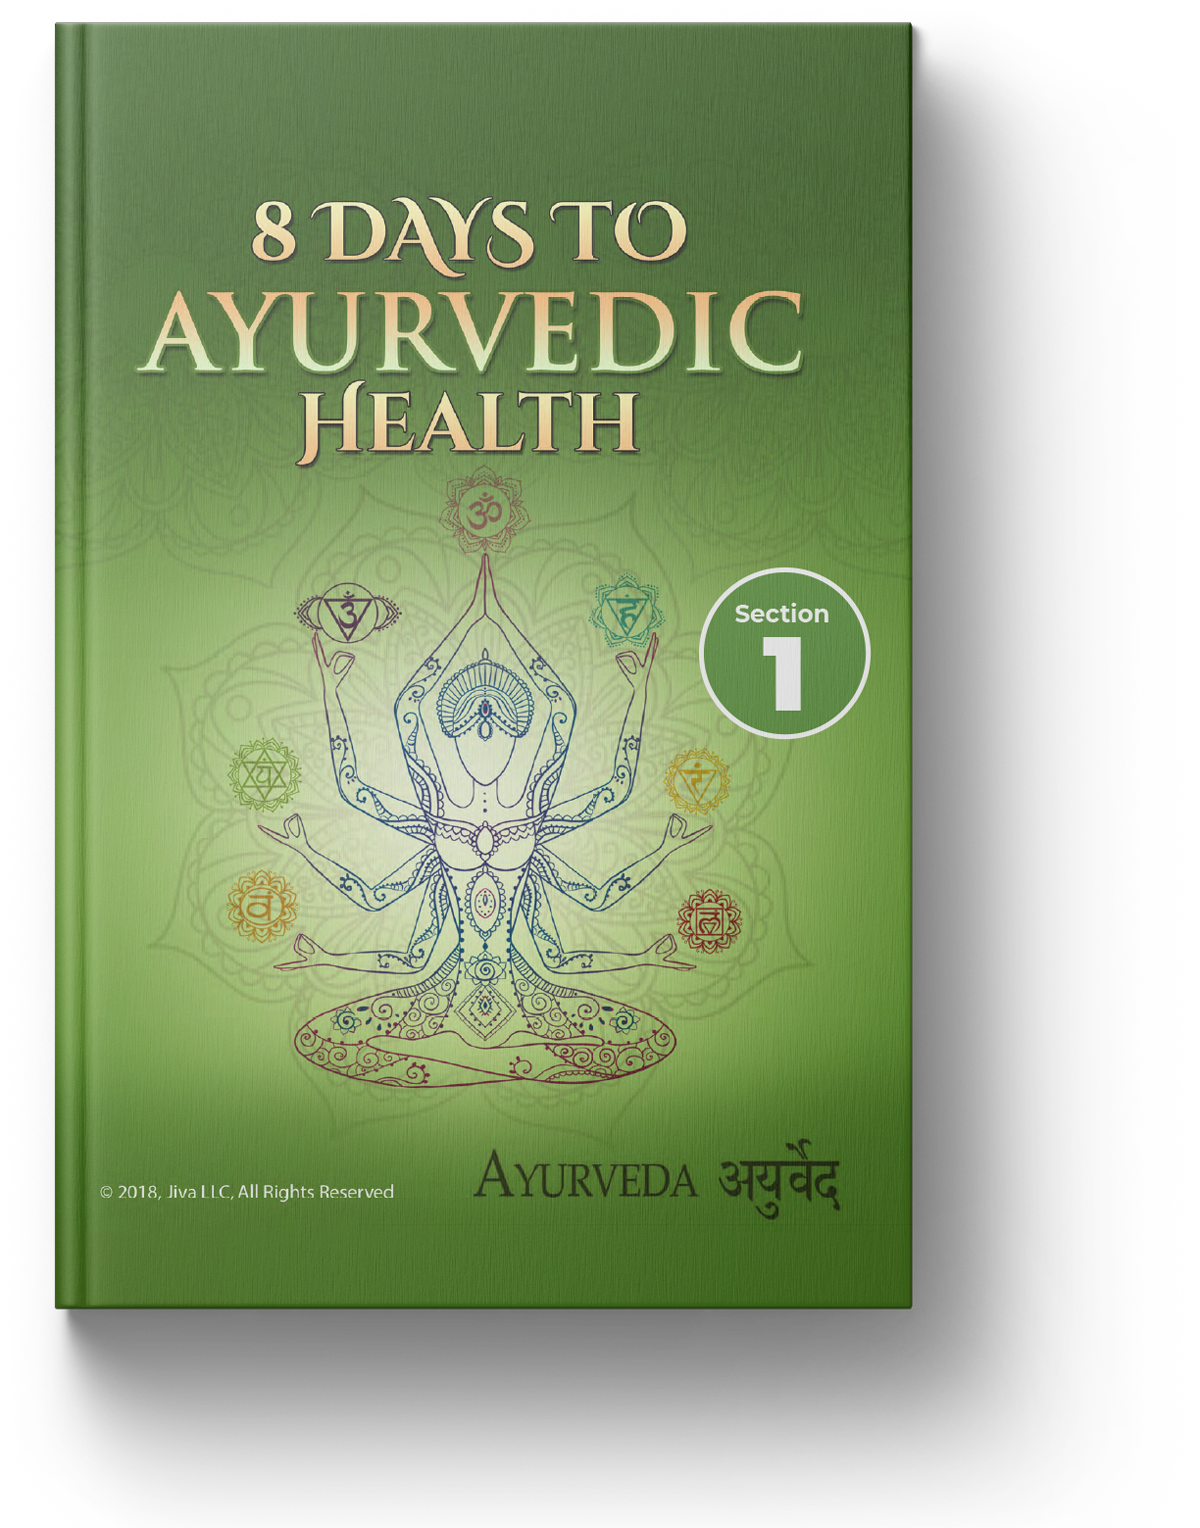 Ayurveda is a profound science of health and healing. Many of it's principals and practices are quite simple and can be easily integrated into everyone's daily lives. 8 Days To Ayurvedic Health is a basic introduction to some of the fundamental principles of Ayurveda, led by Jiva Botanicals.